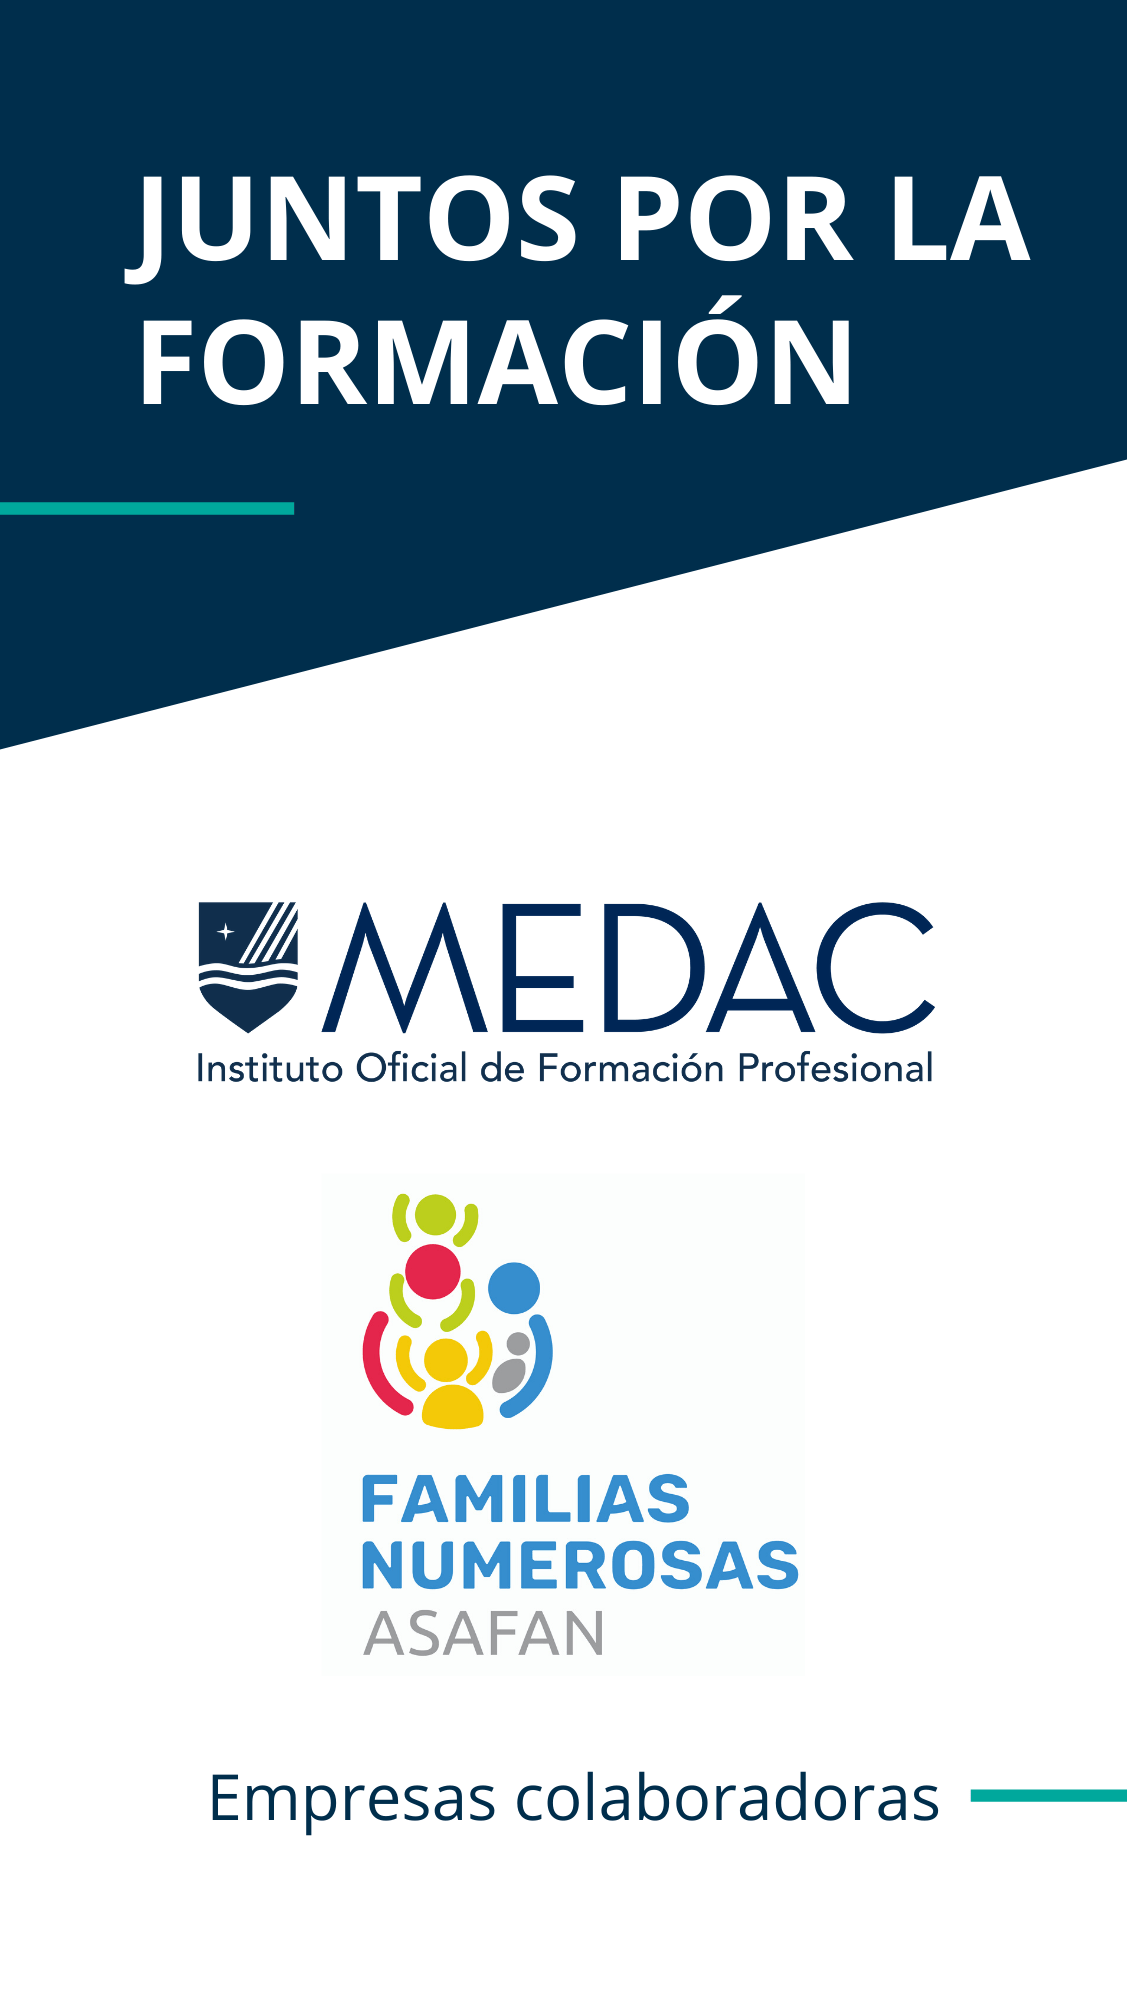 ASAFAN and MEDAC unite to promote post-compulsory training among large families.